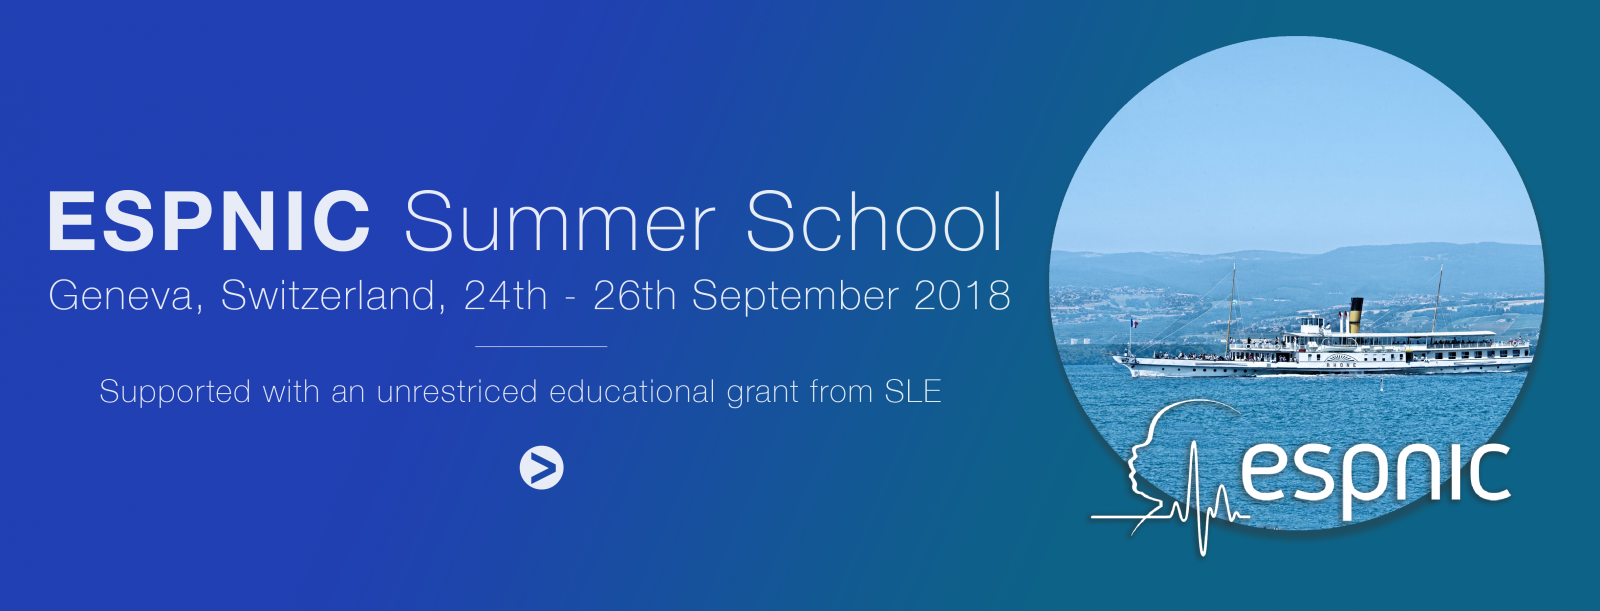 ESPNIC Summer School - Supported with an unrestriced educational grant from SLE